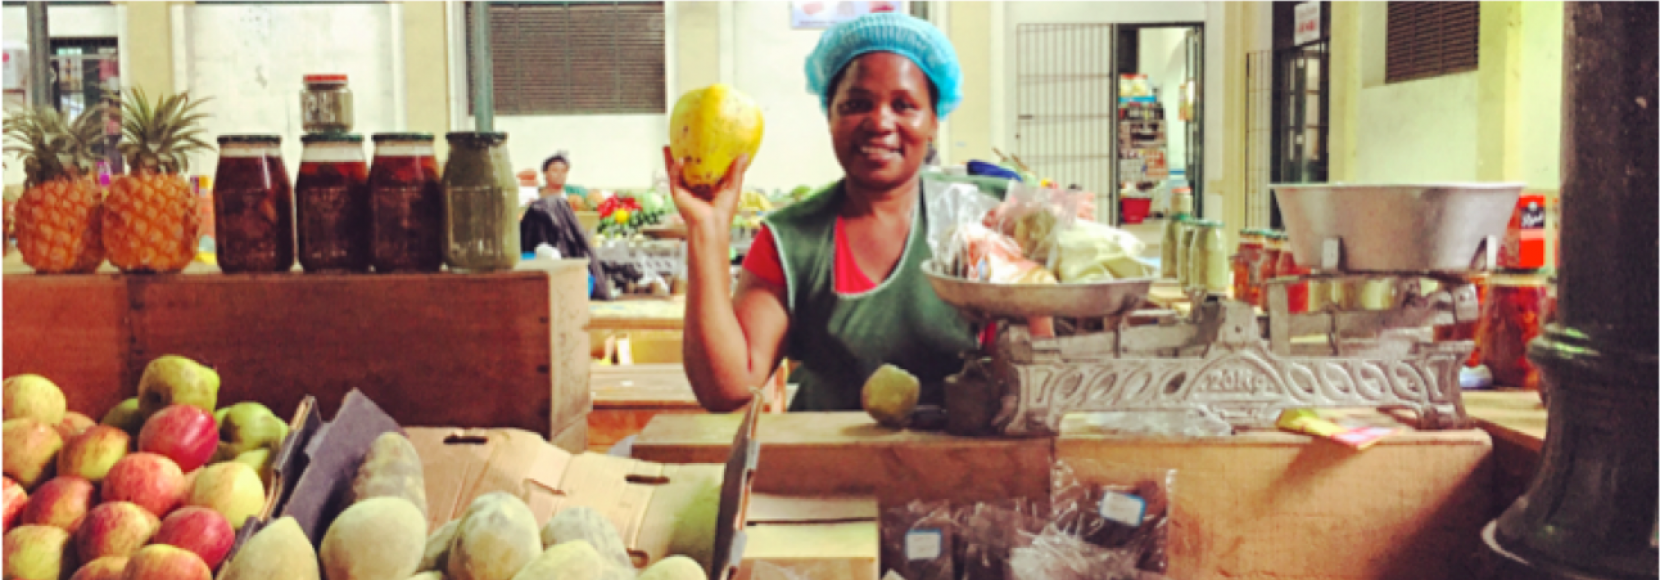 Retailer in Maputo, Mozambique from the WIN project